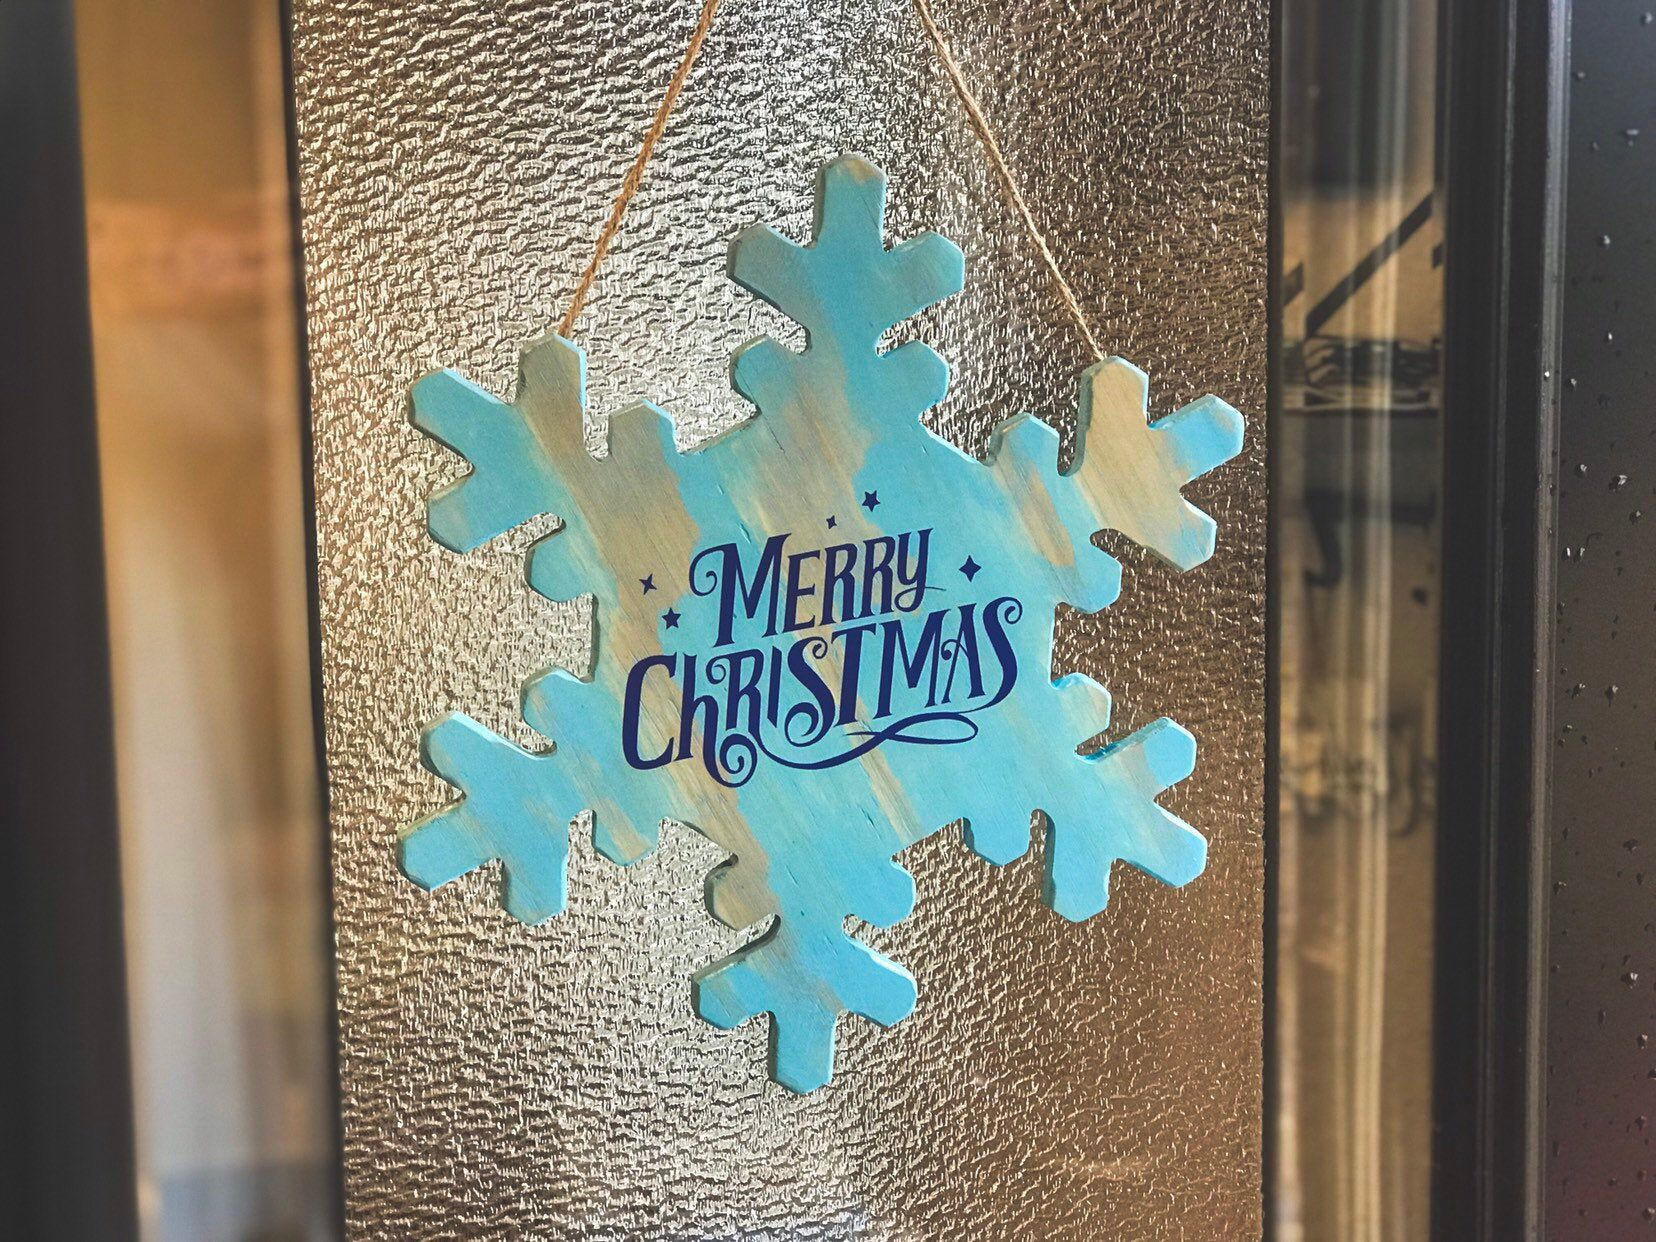 Merry Christmas Blue Snowflake Door Hanger, Vintage Christmas, Christmas Wreath, Christmas Decor, Snowflake Wreath #hangersnowflake